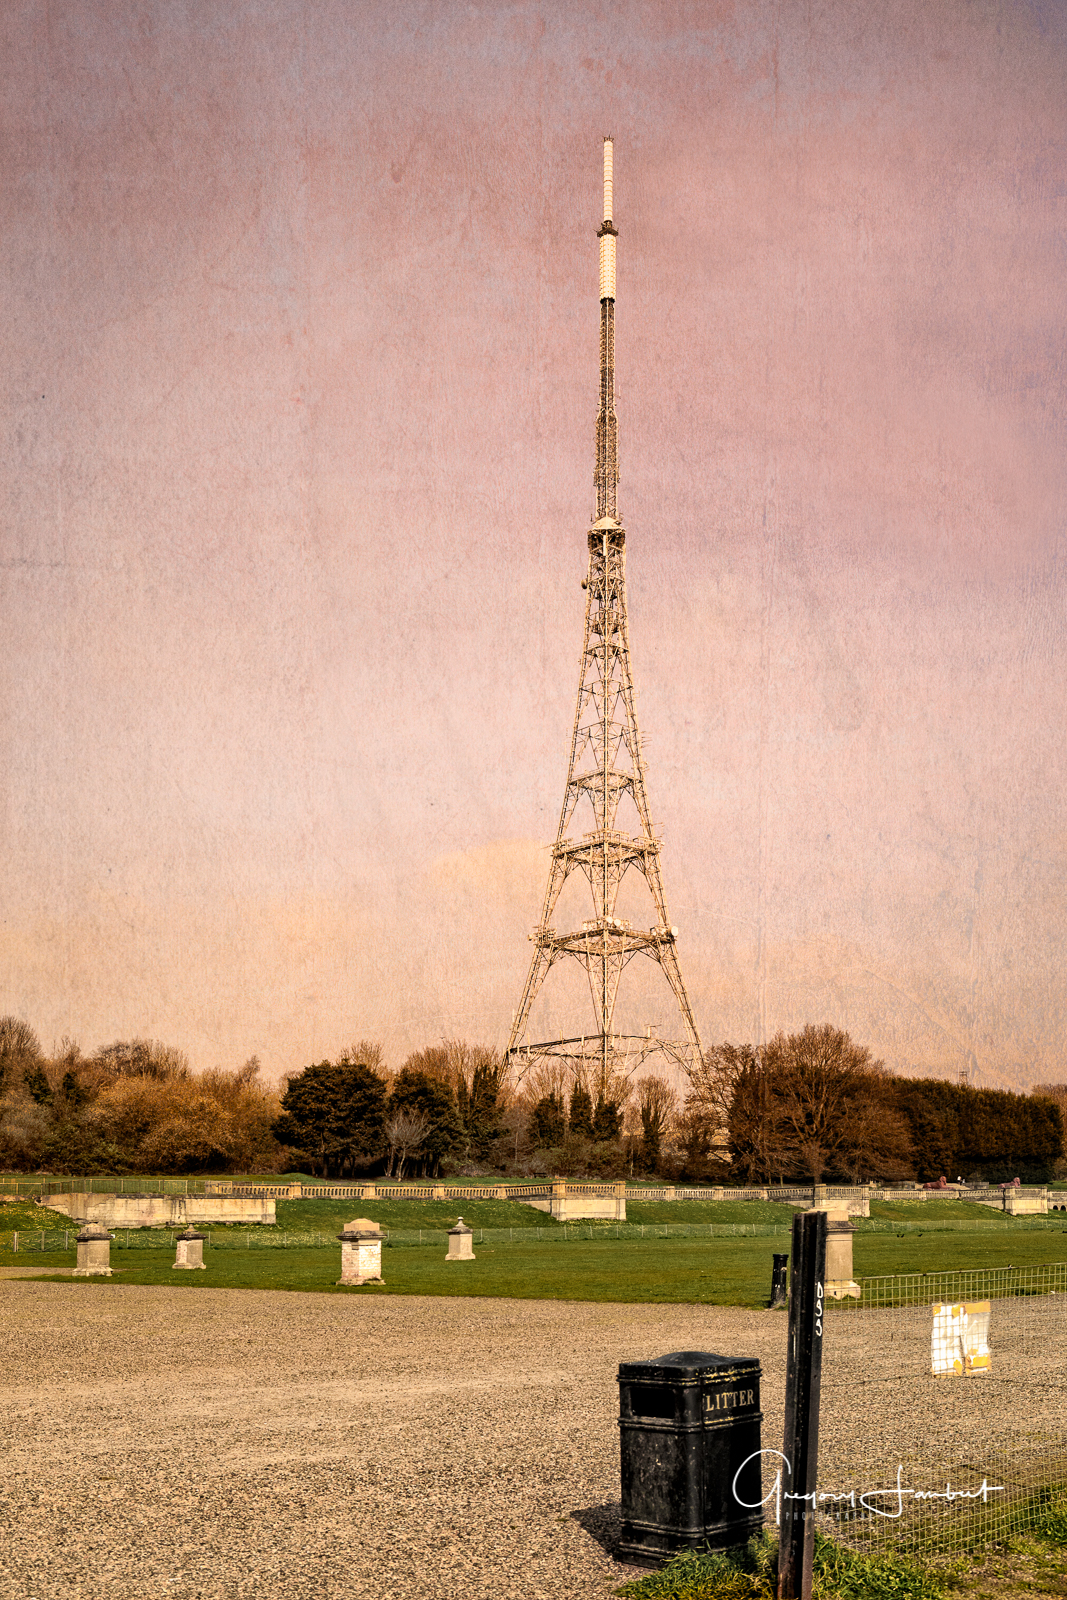 20170327-_61A0102_Bromley_Crystal-Palace-Park_BBC-Transmitter-stands-tall